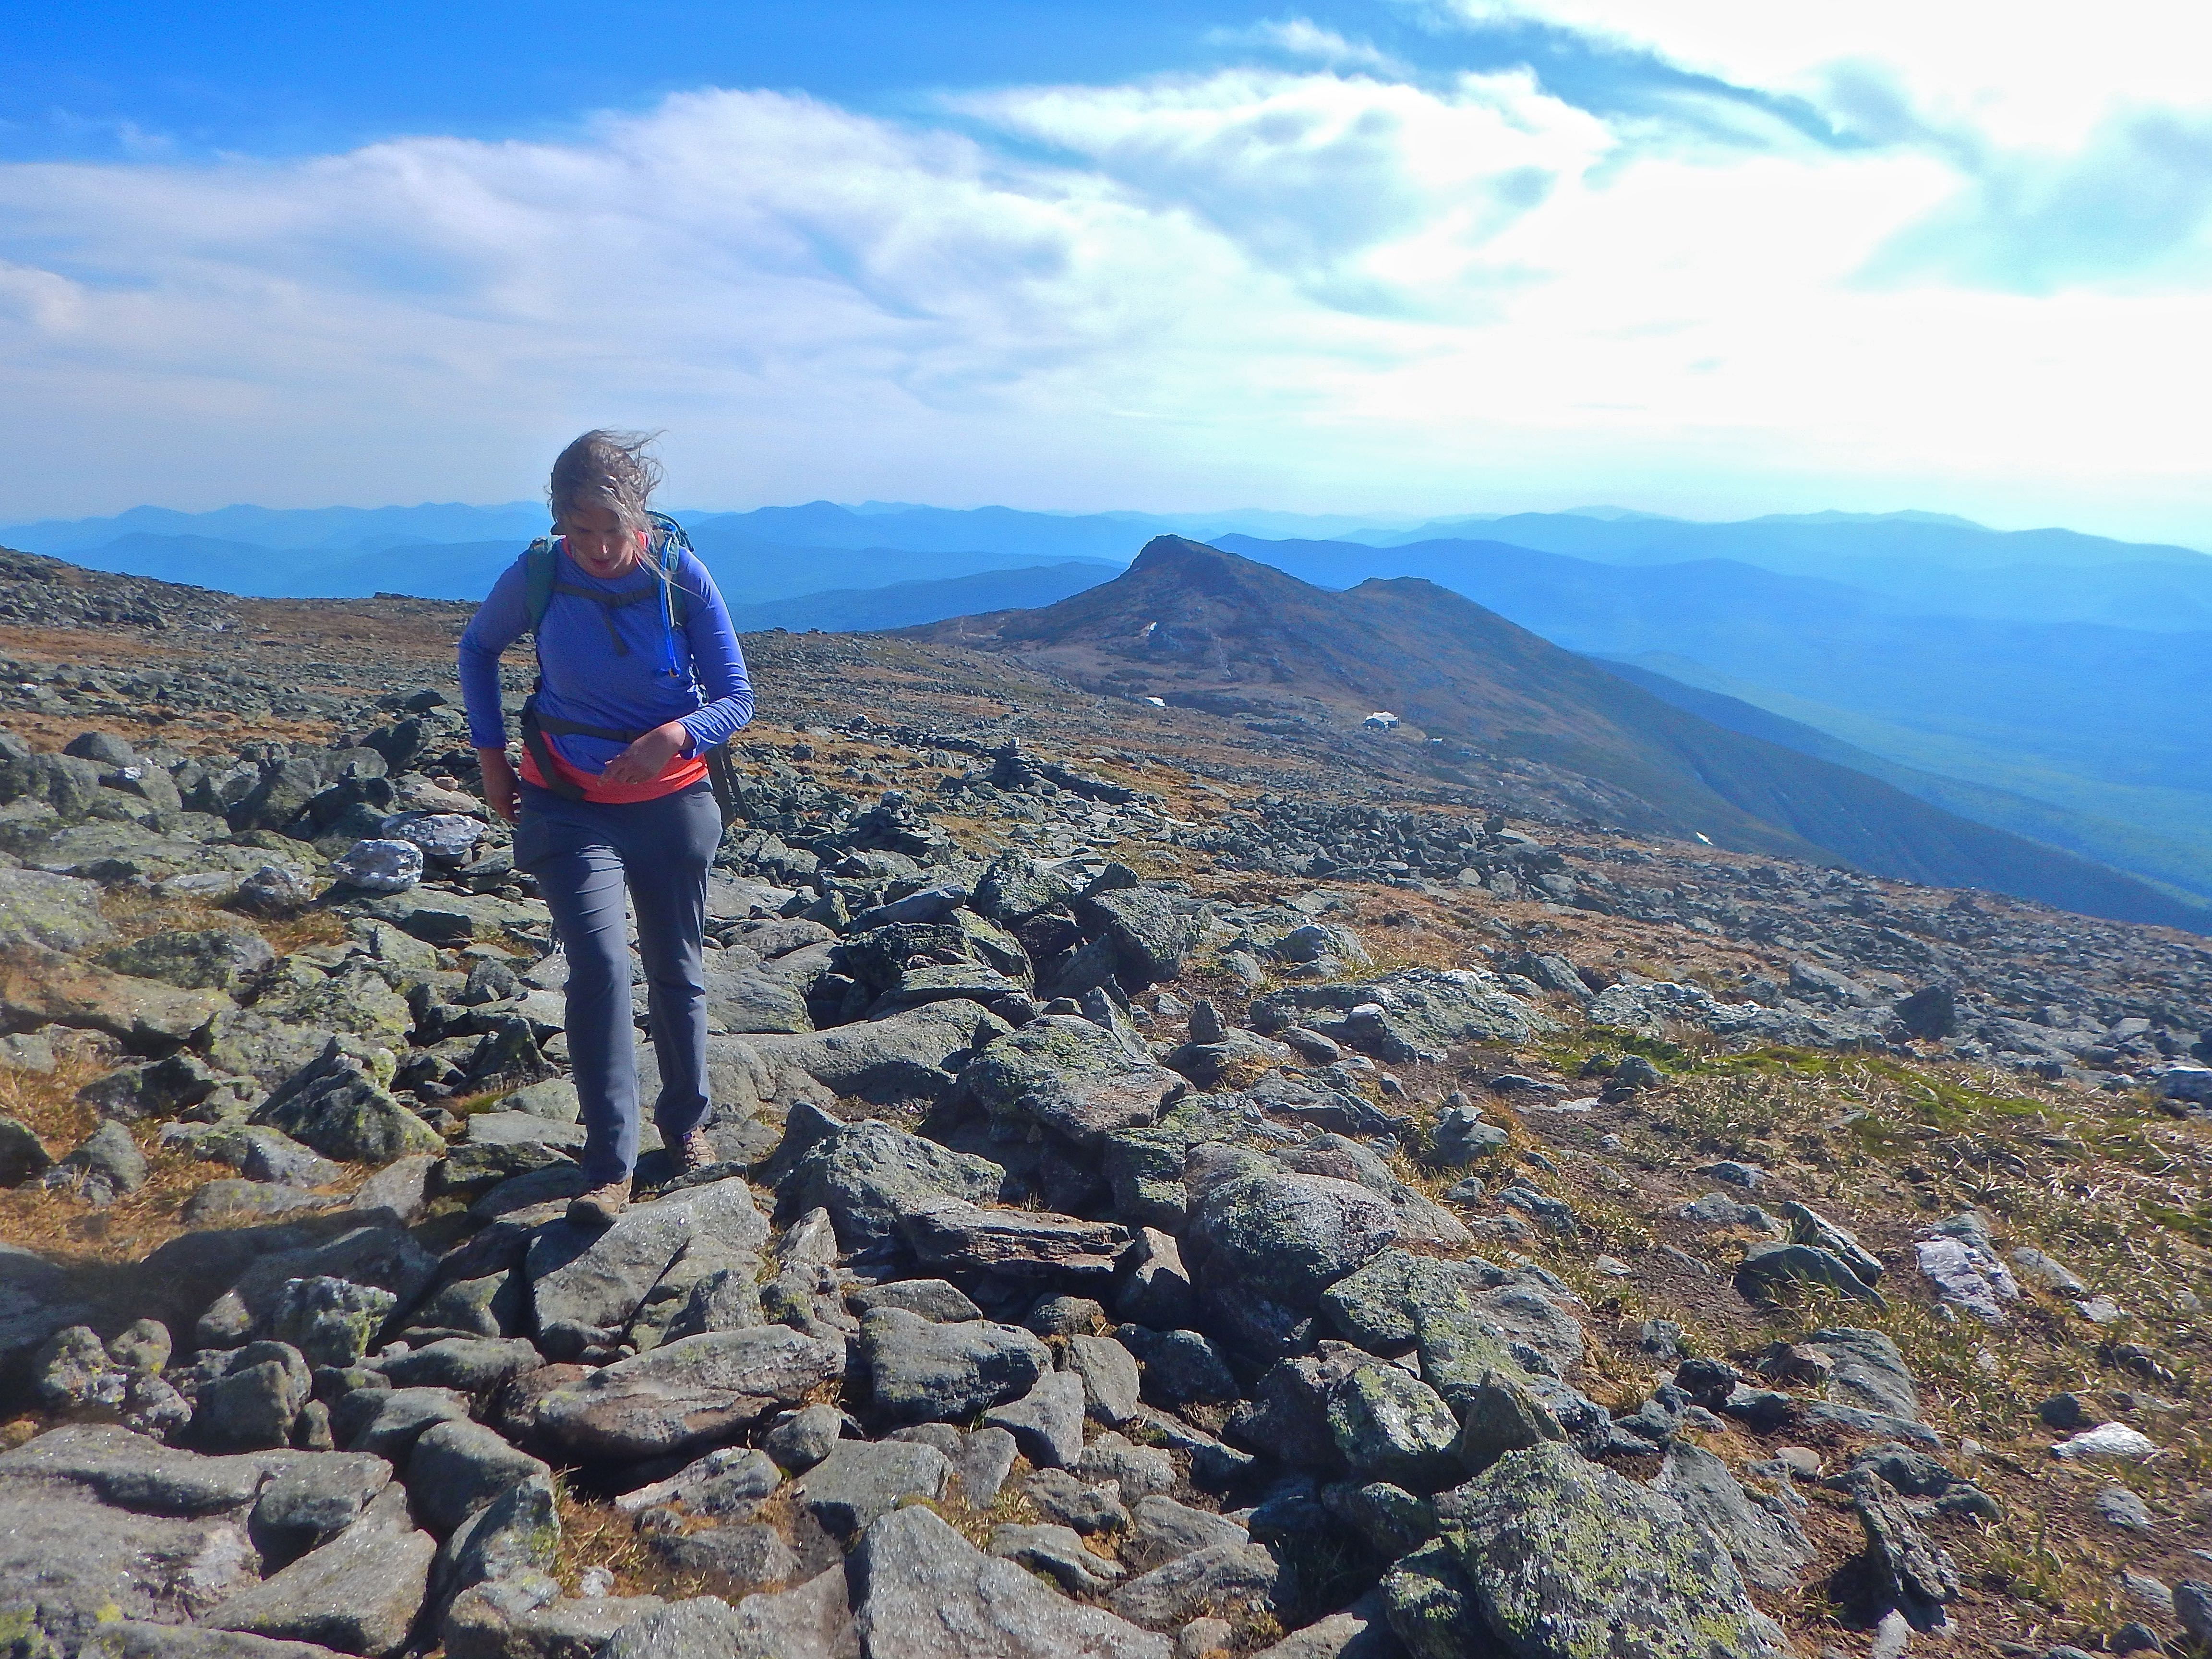 Caption: My wife Juliana choosing to go big in New Hampshire's Presidential Range, Credit: Brian Aust